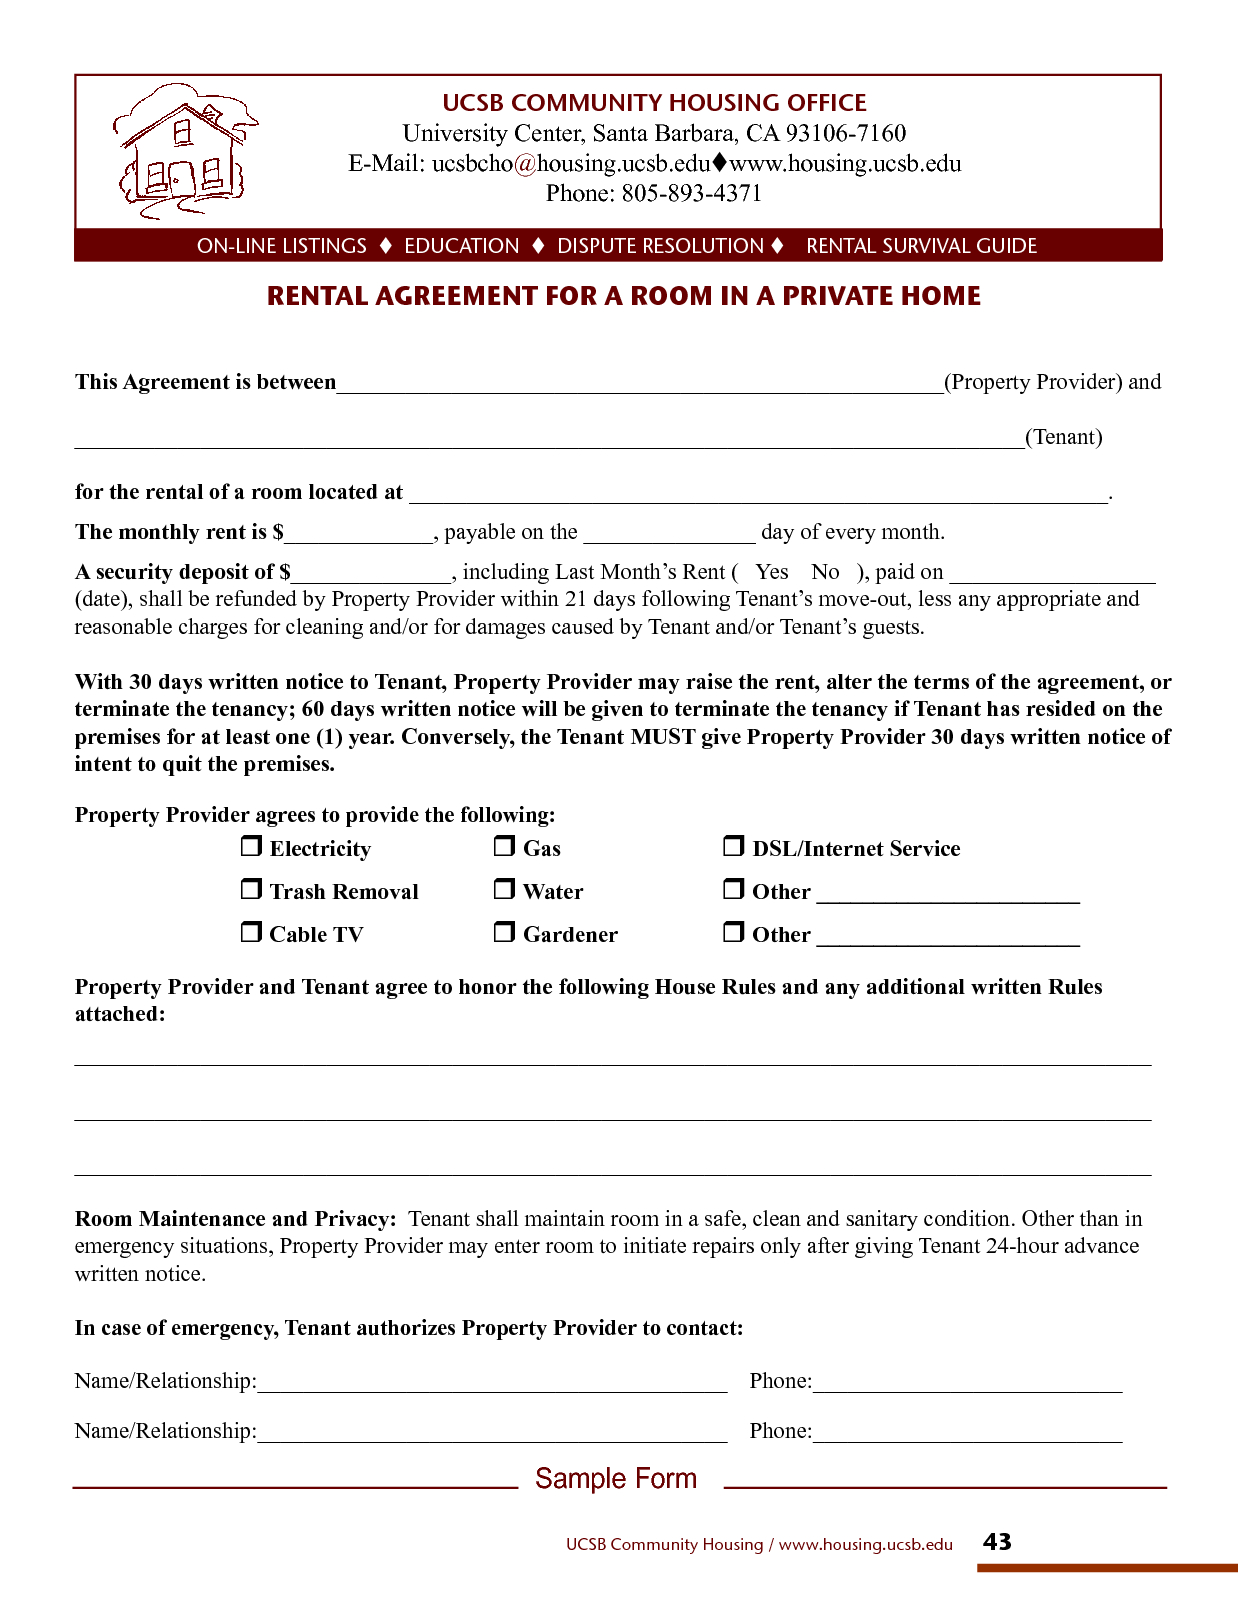 Home Rental Lease Agreements For Private Room Room Rental Agreement Regarding Private Rental Agreement Template